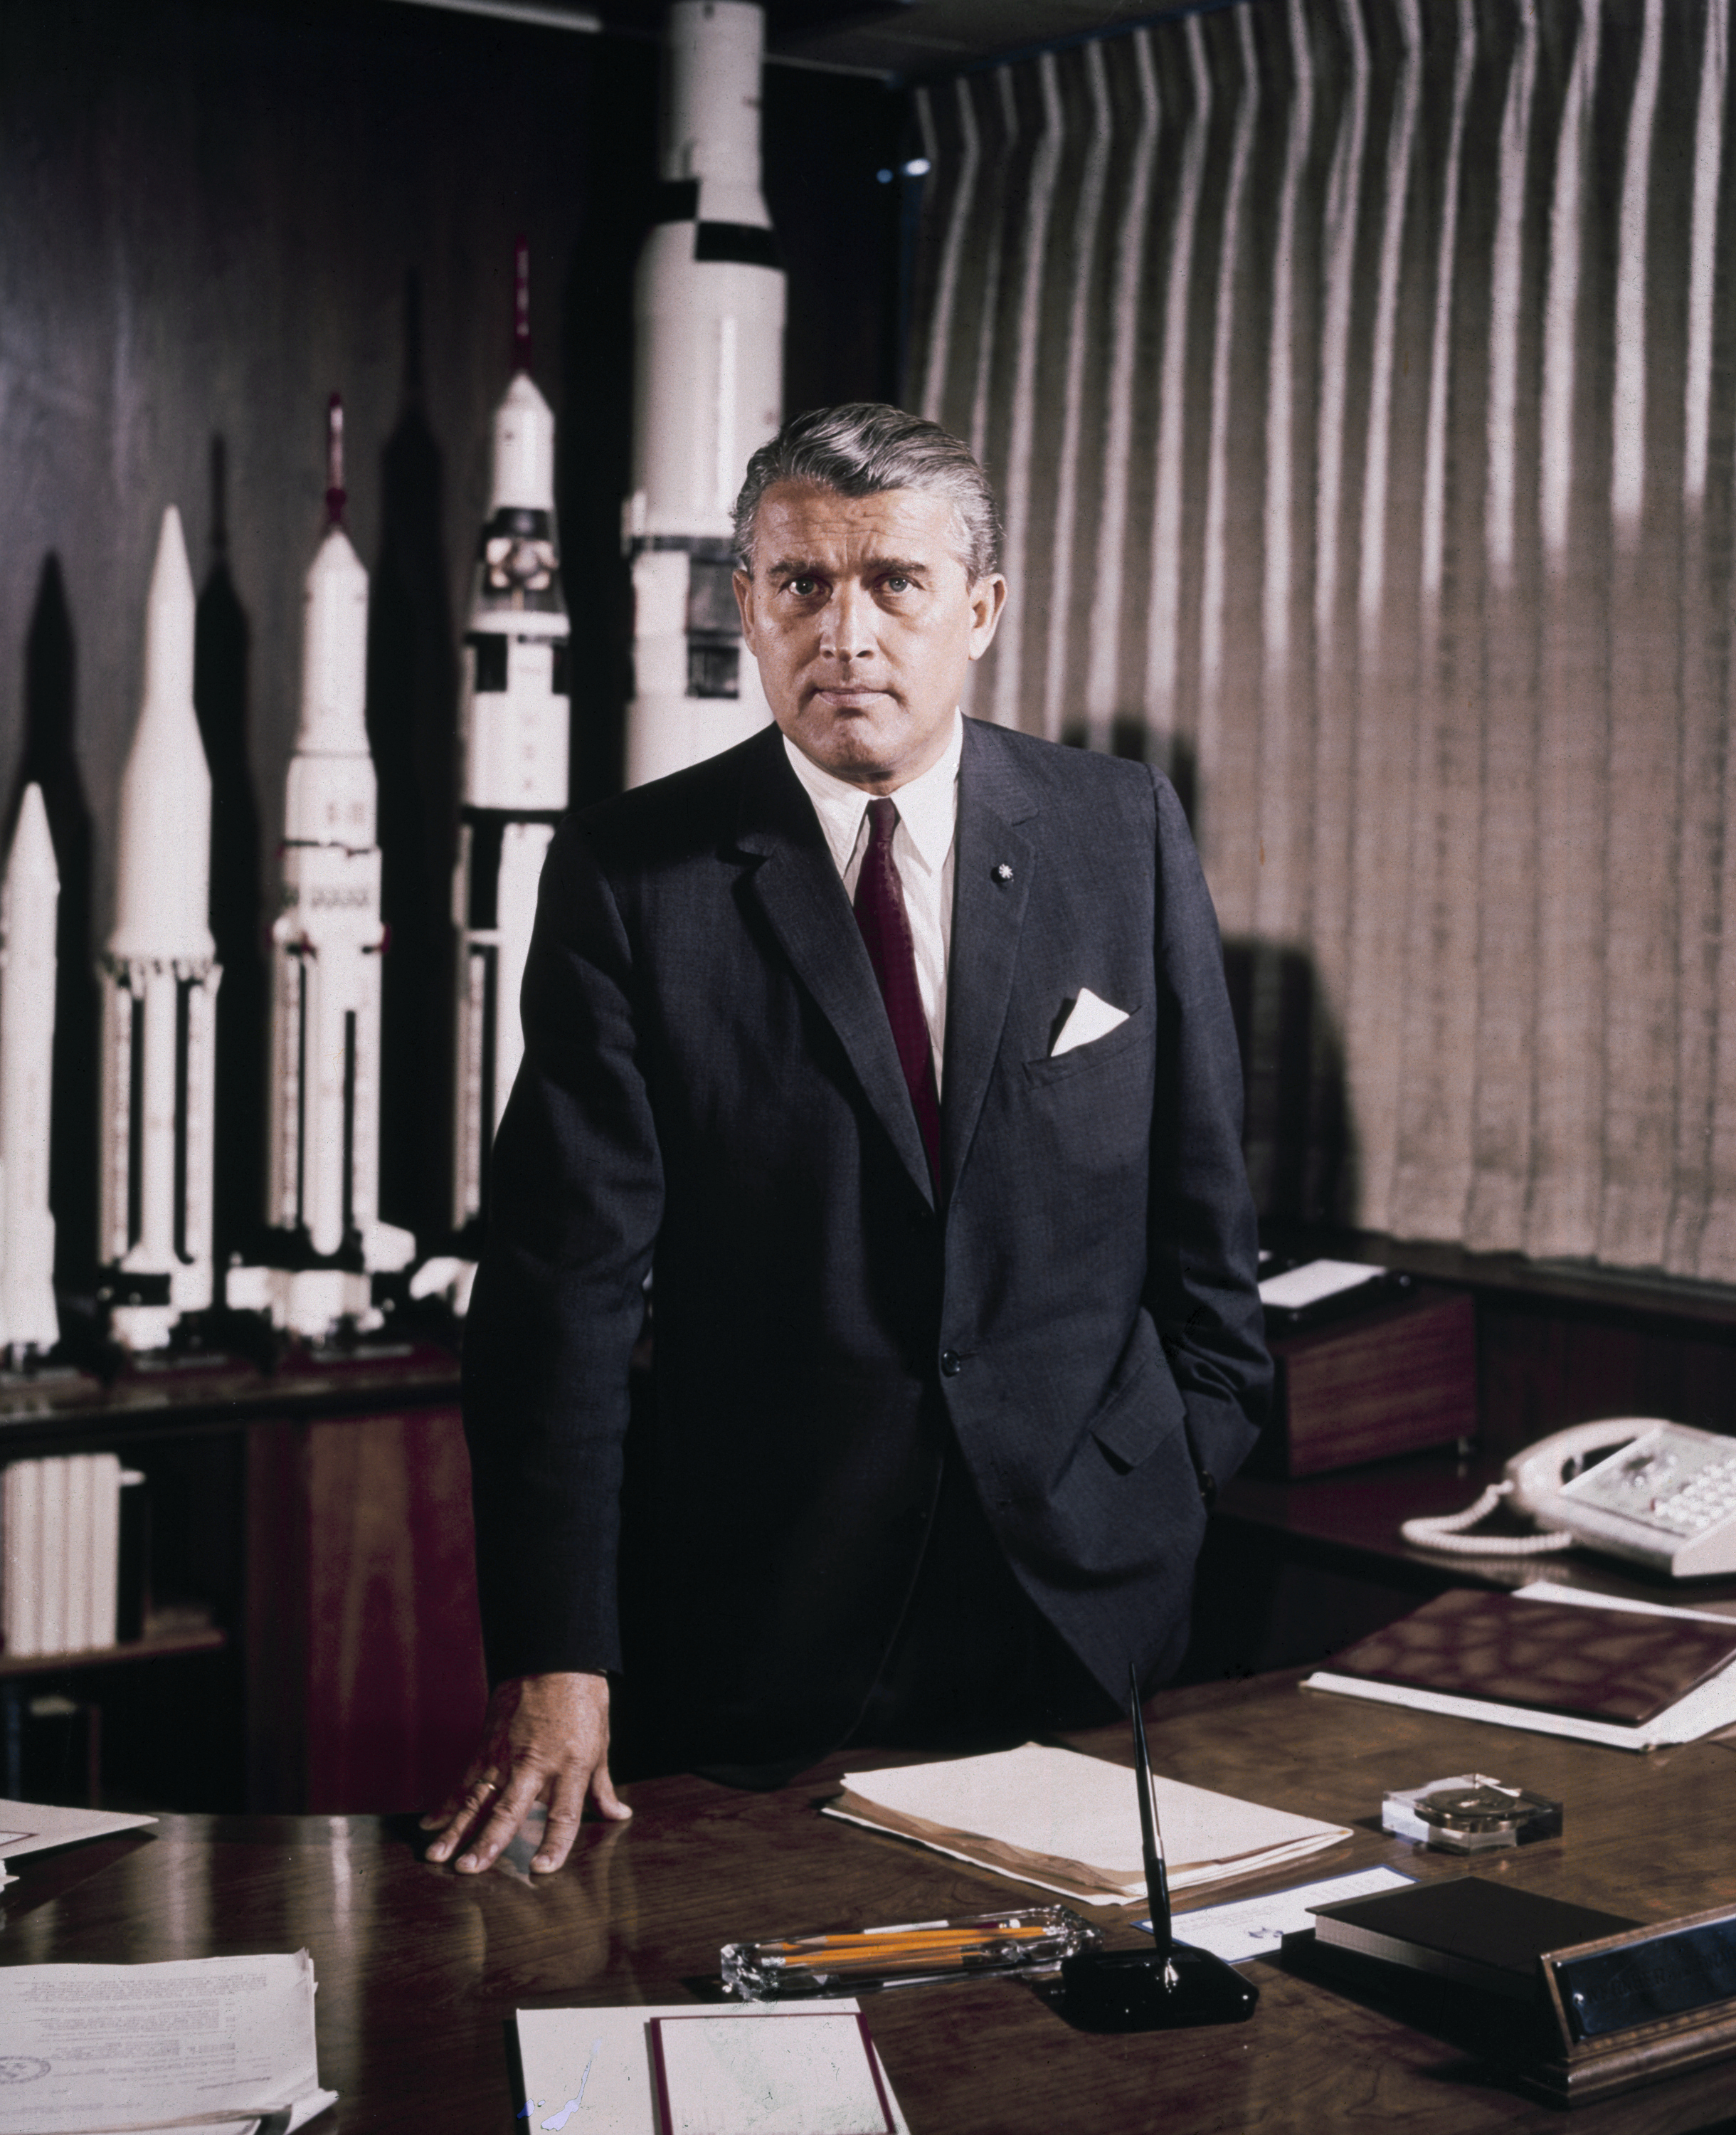 https://i0.wp.com/upload.wikimedia.org/wikipedia/commons/f/ff/Wernher_von_Braun.jpg